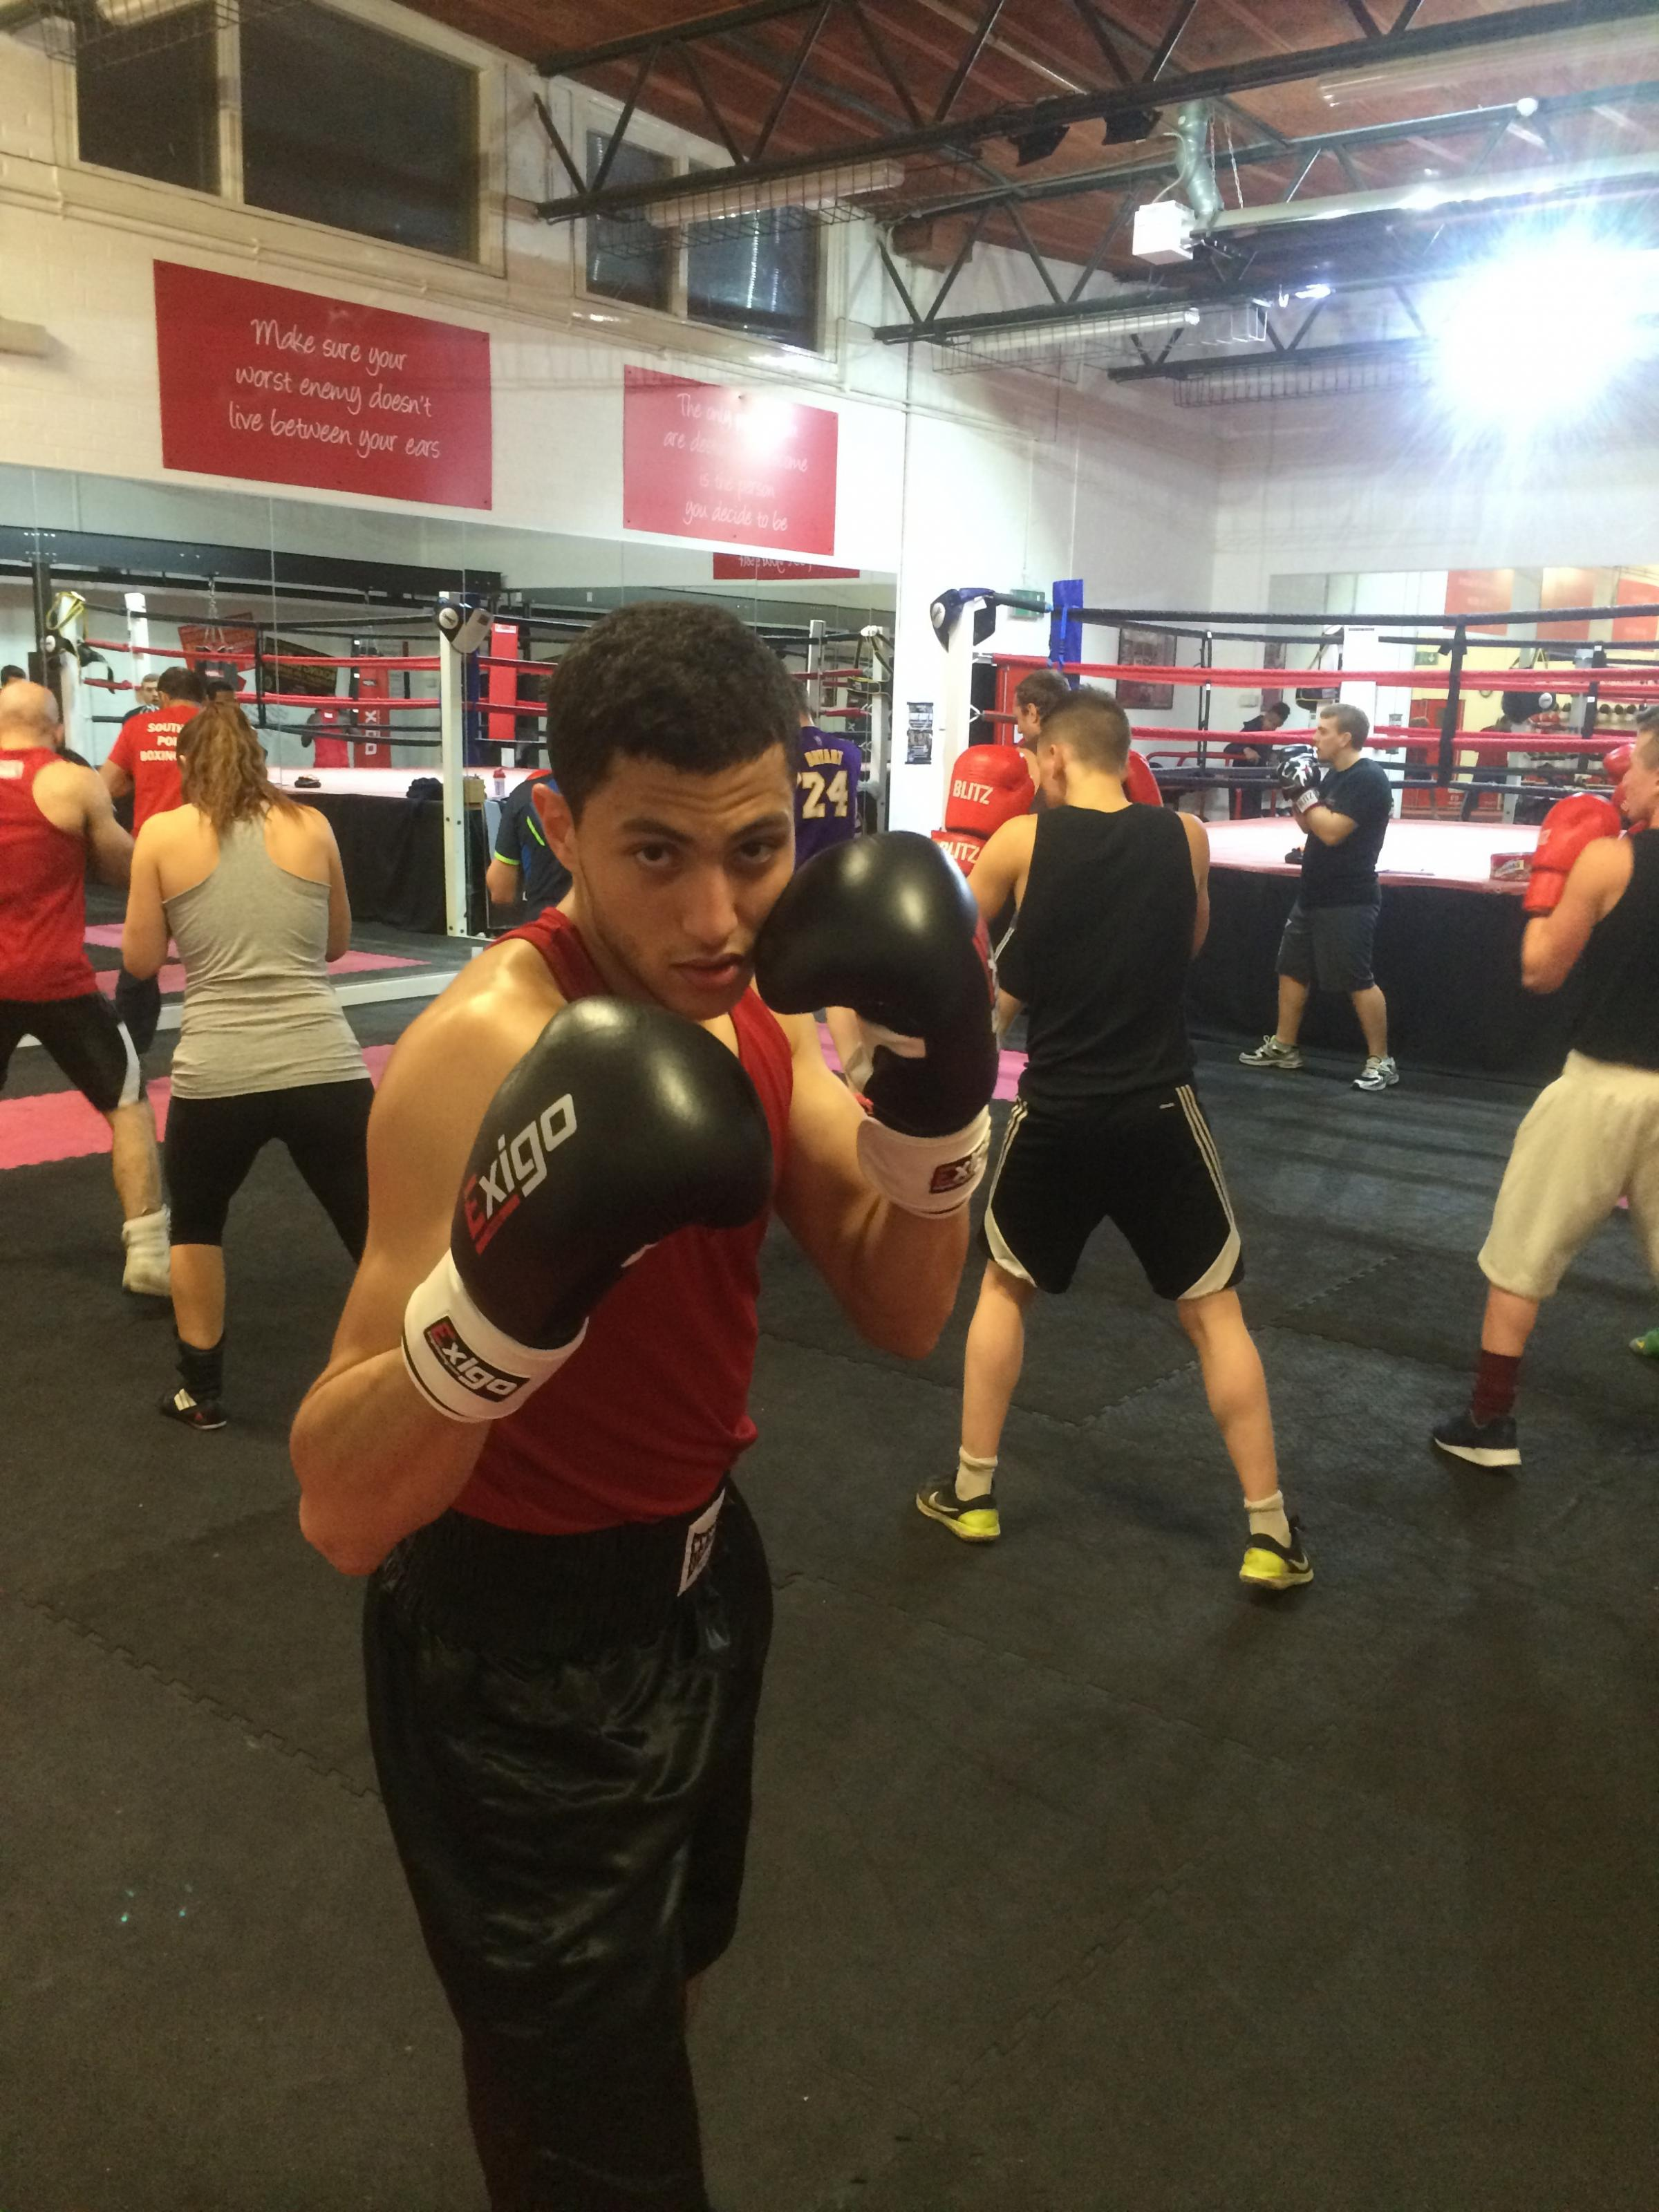 Yusuf Abdallah will be competing on South Wye Boxing Academy's show at Hereford Sixth Form Centre this Saturday